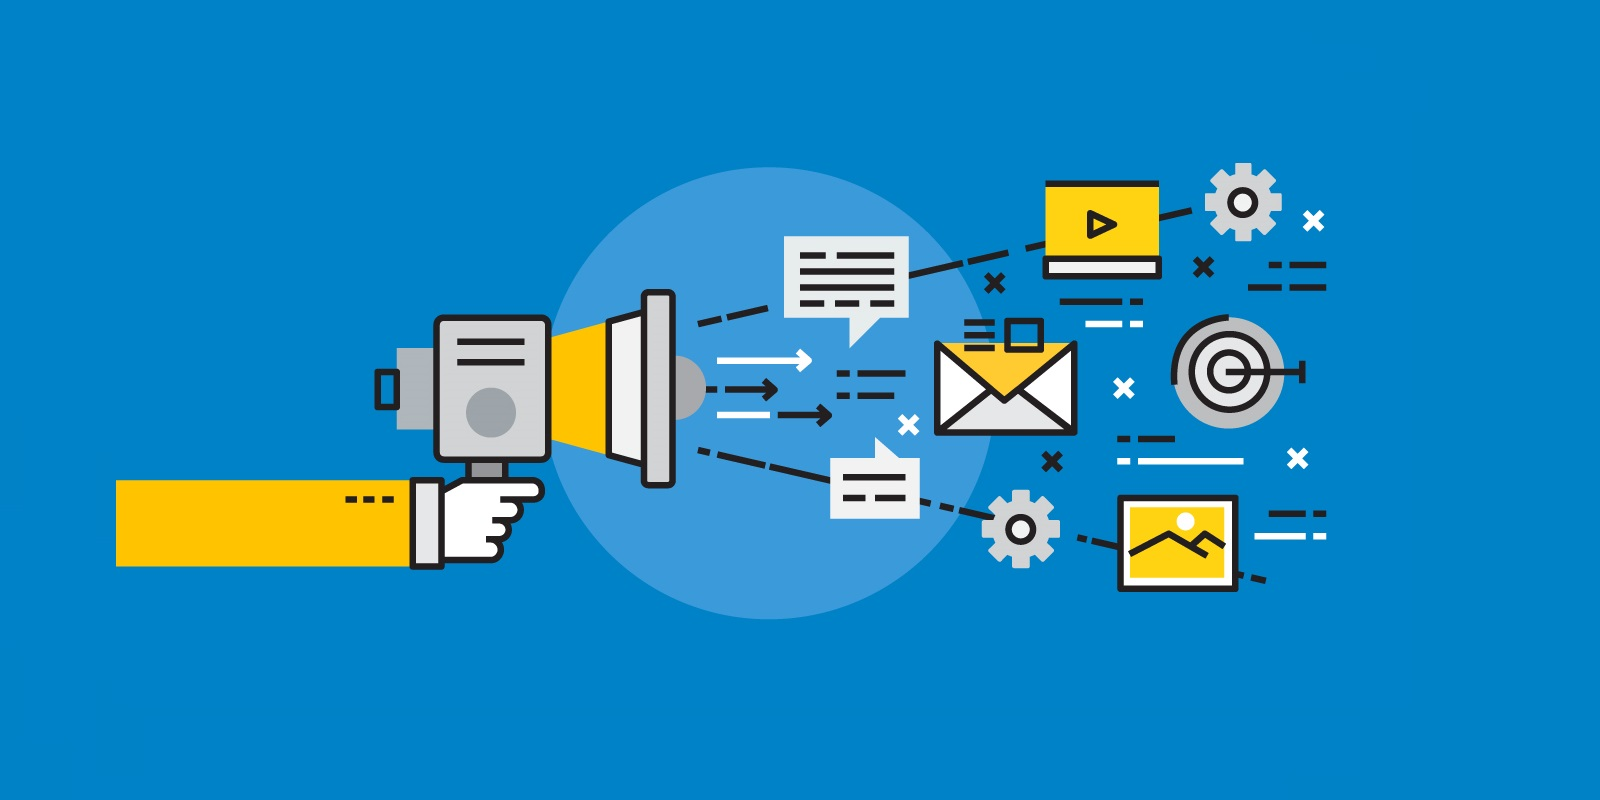 Email Marketing Trends and Statistics of 2018